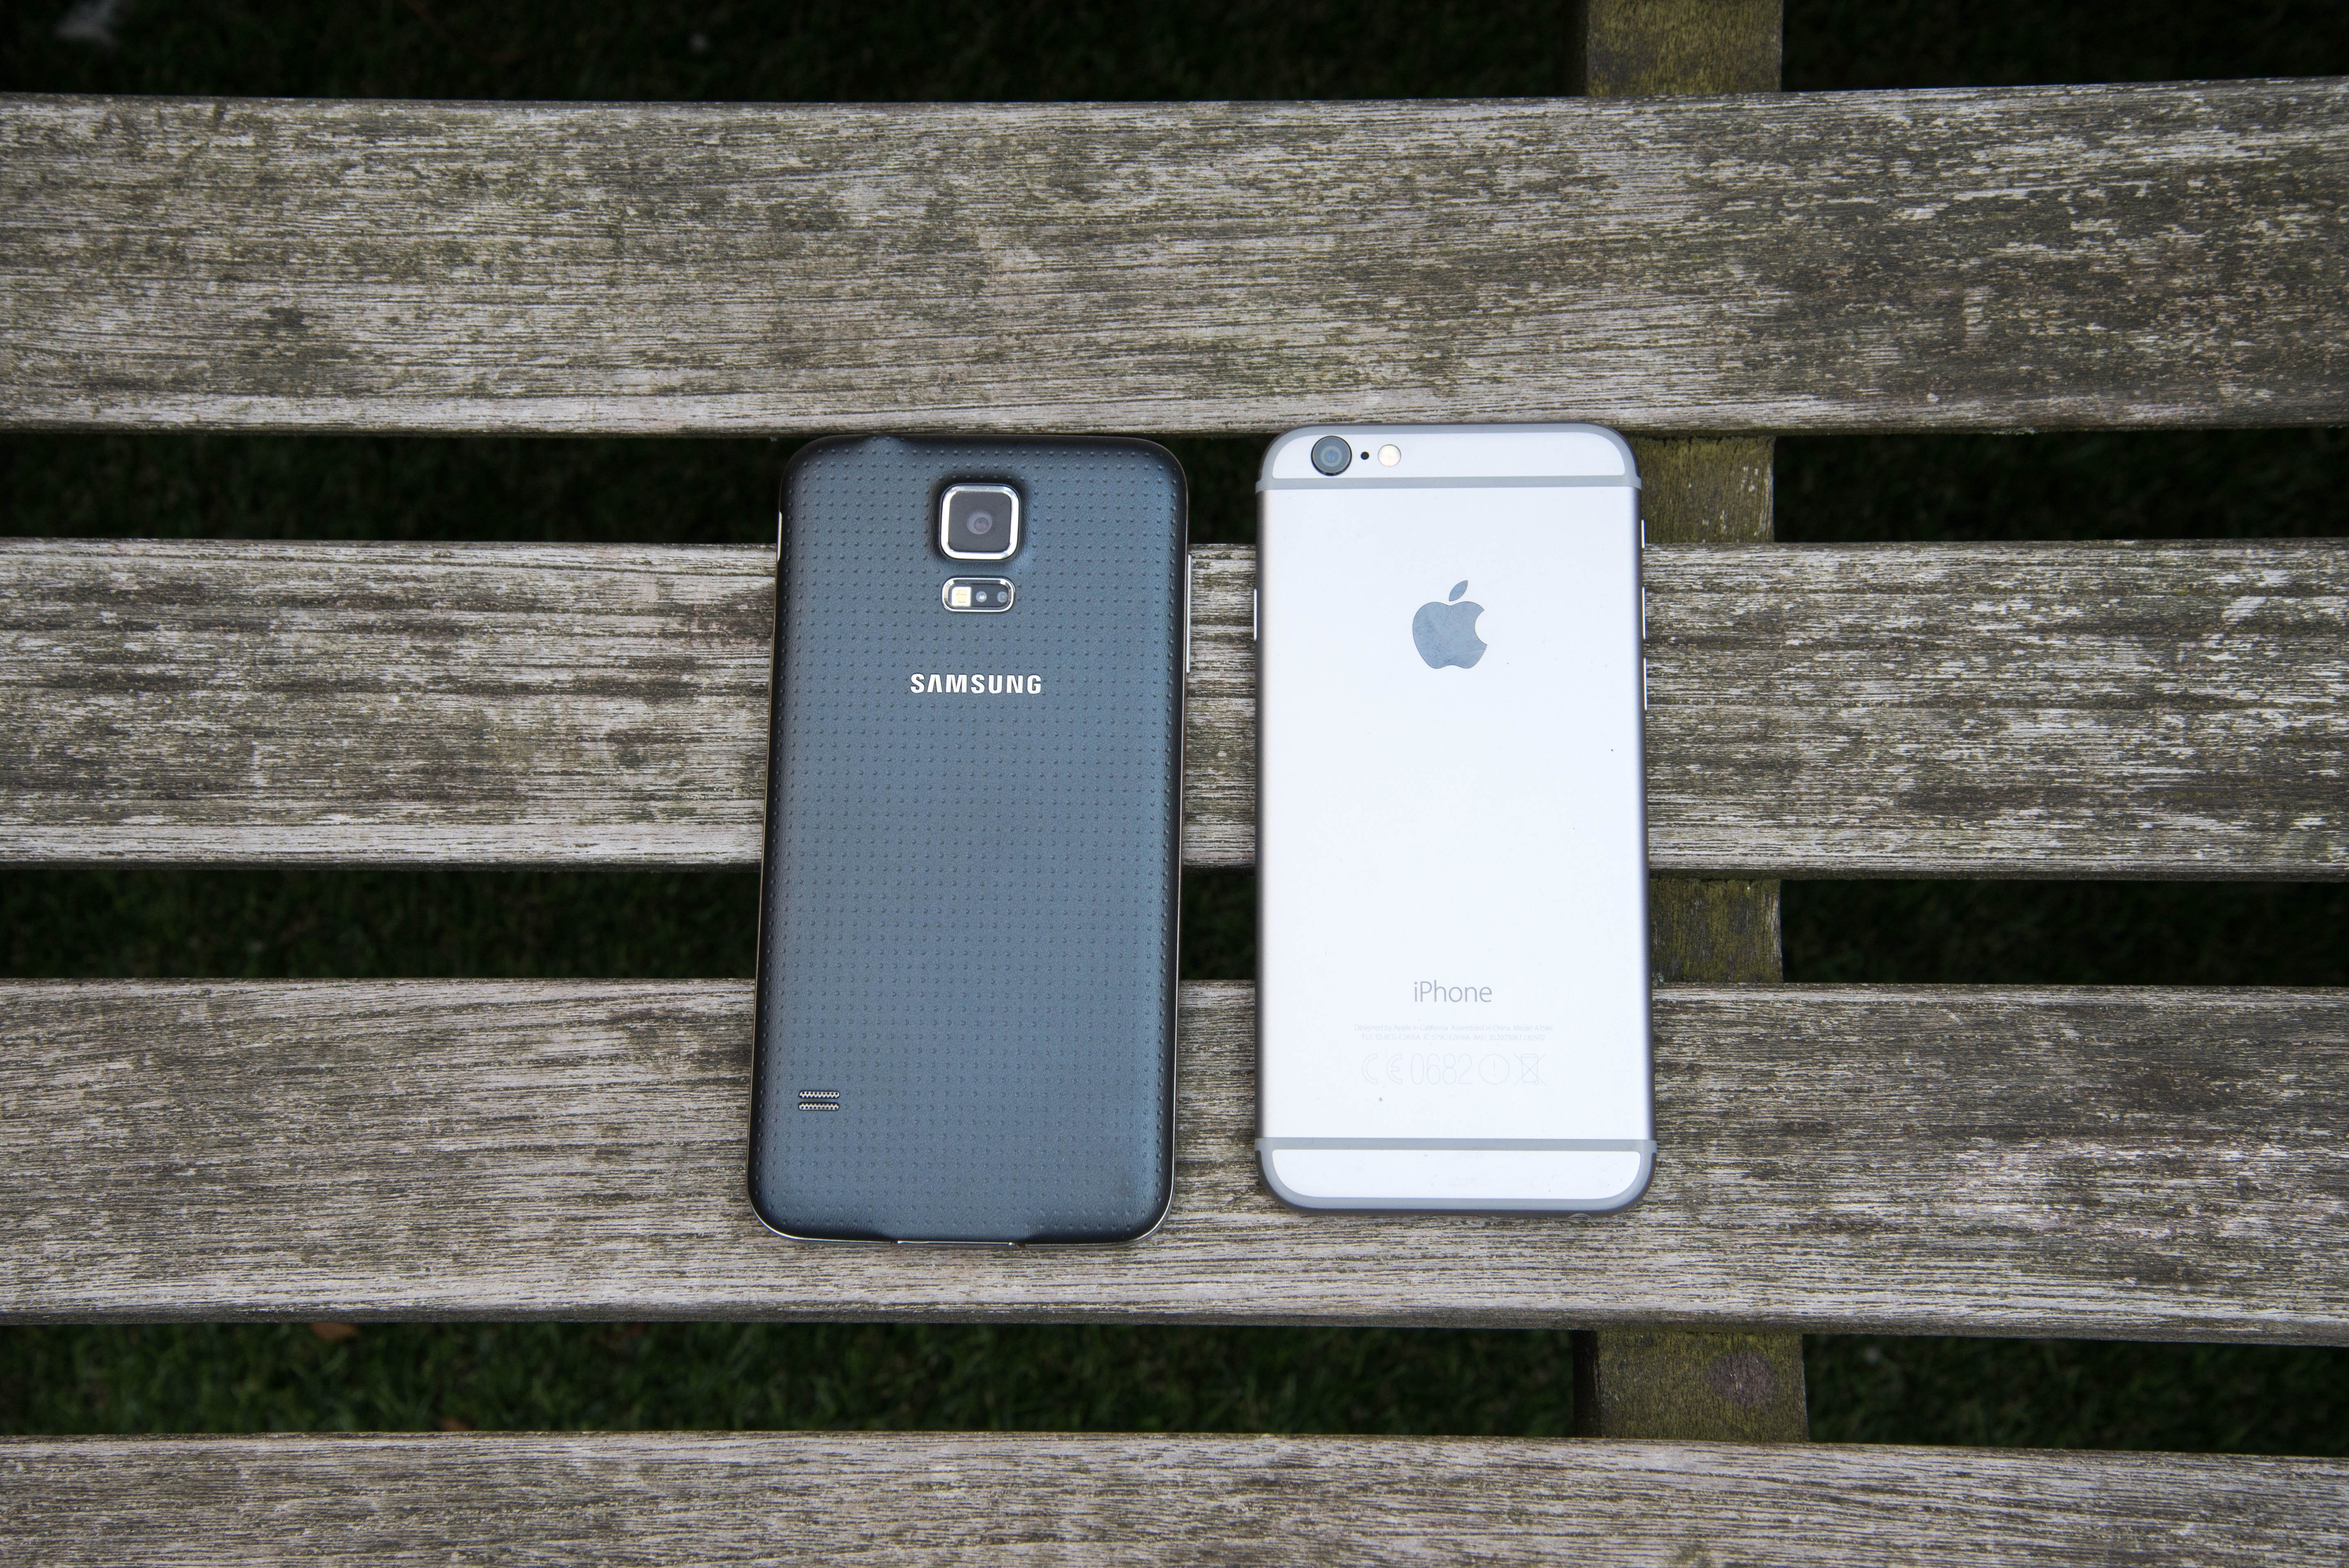 iPhone 6 vs Samsung Galaxy S5 - which phone is best for you